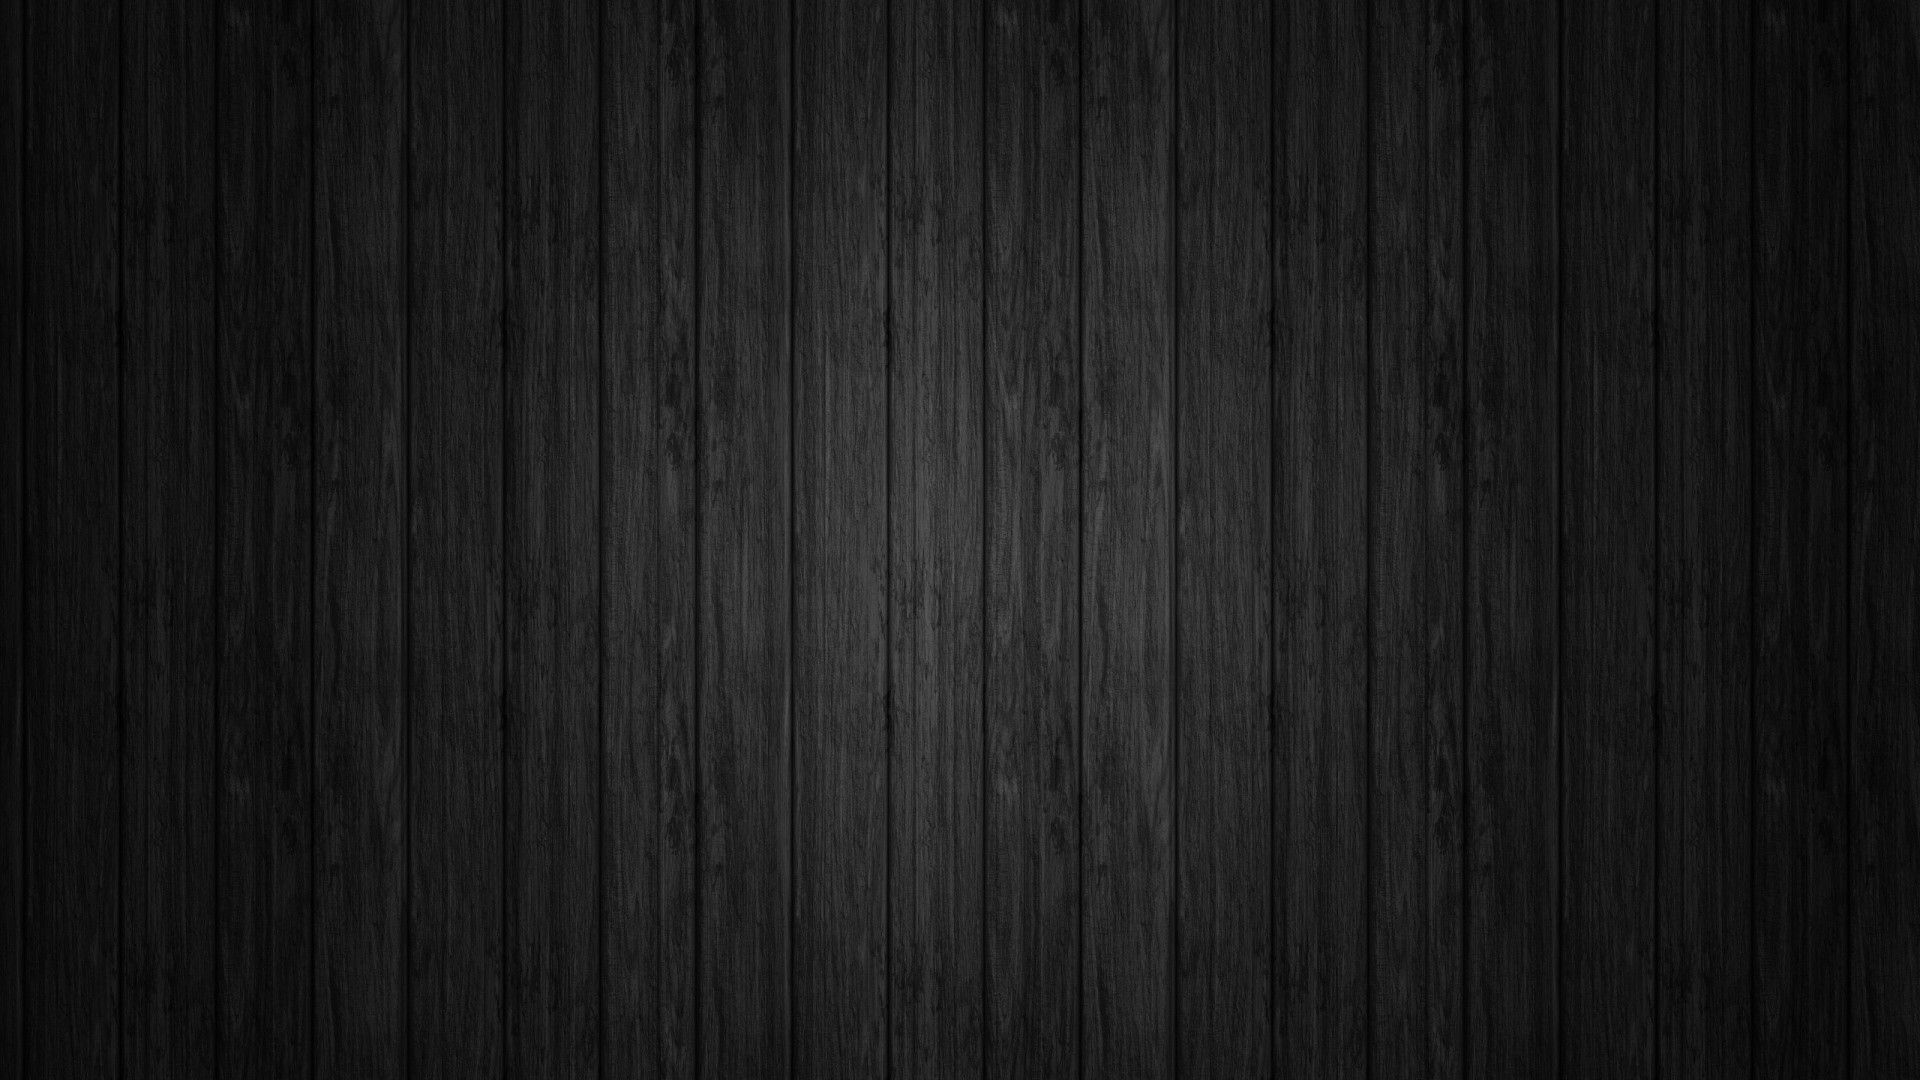 1920x1080 Preview Wallpaper Board Black Line Texture Background Wood 1920x1080 Black Background Wallpaper Black Hd Wallpaper Background Hd Wallpaper